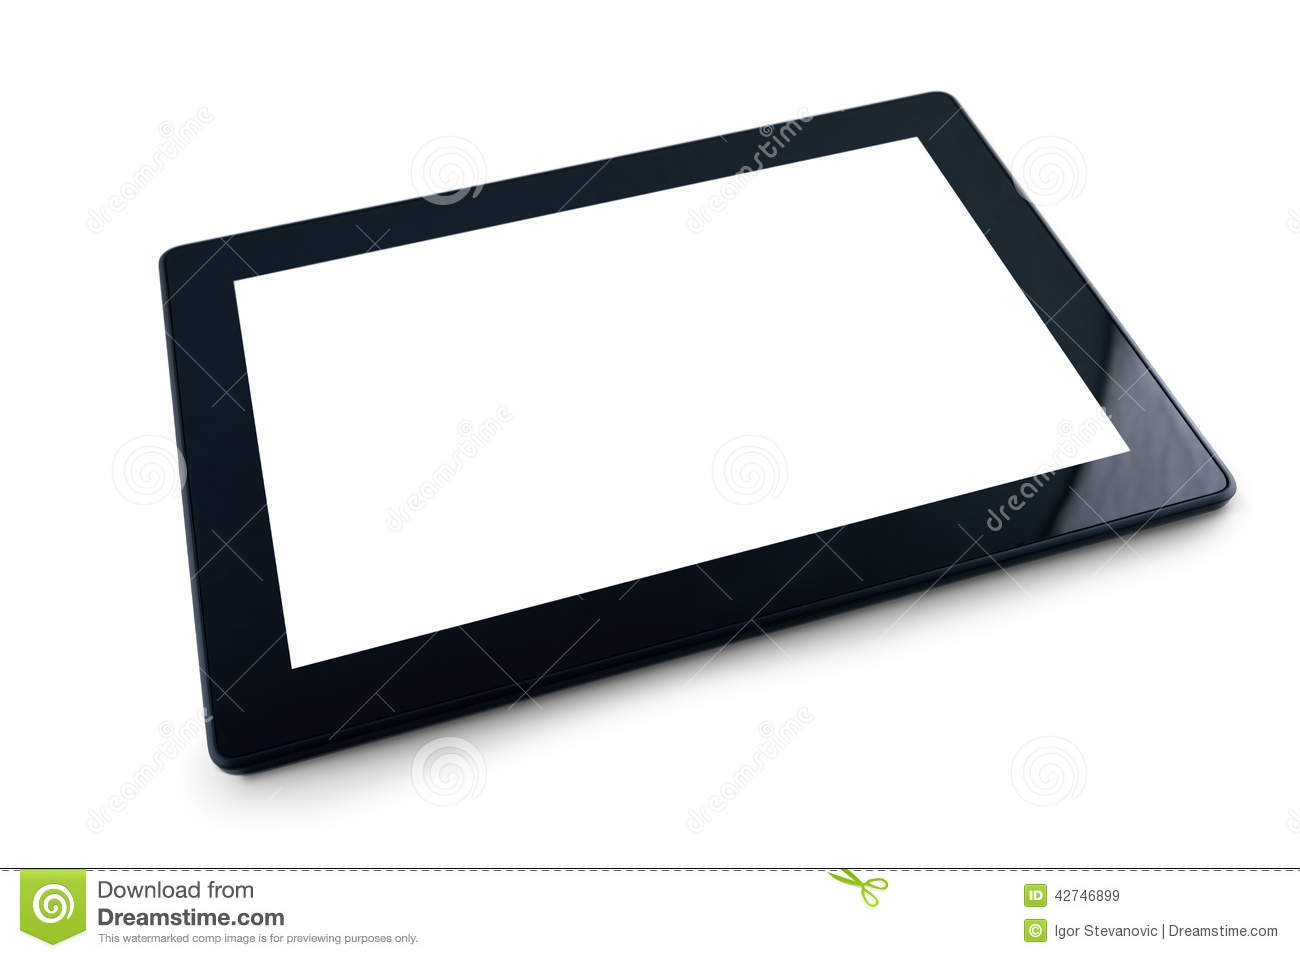 Pc on white background 10 inch display tablet computer as modern